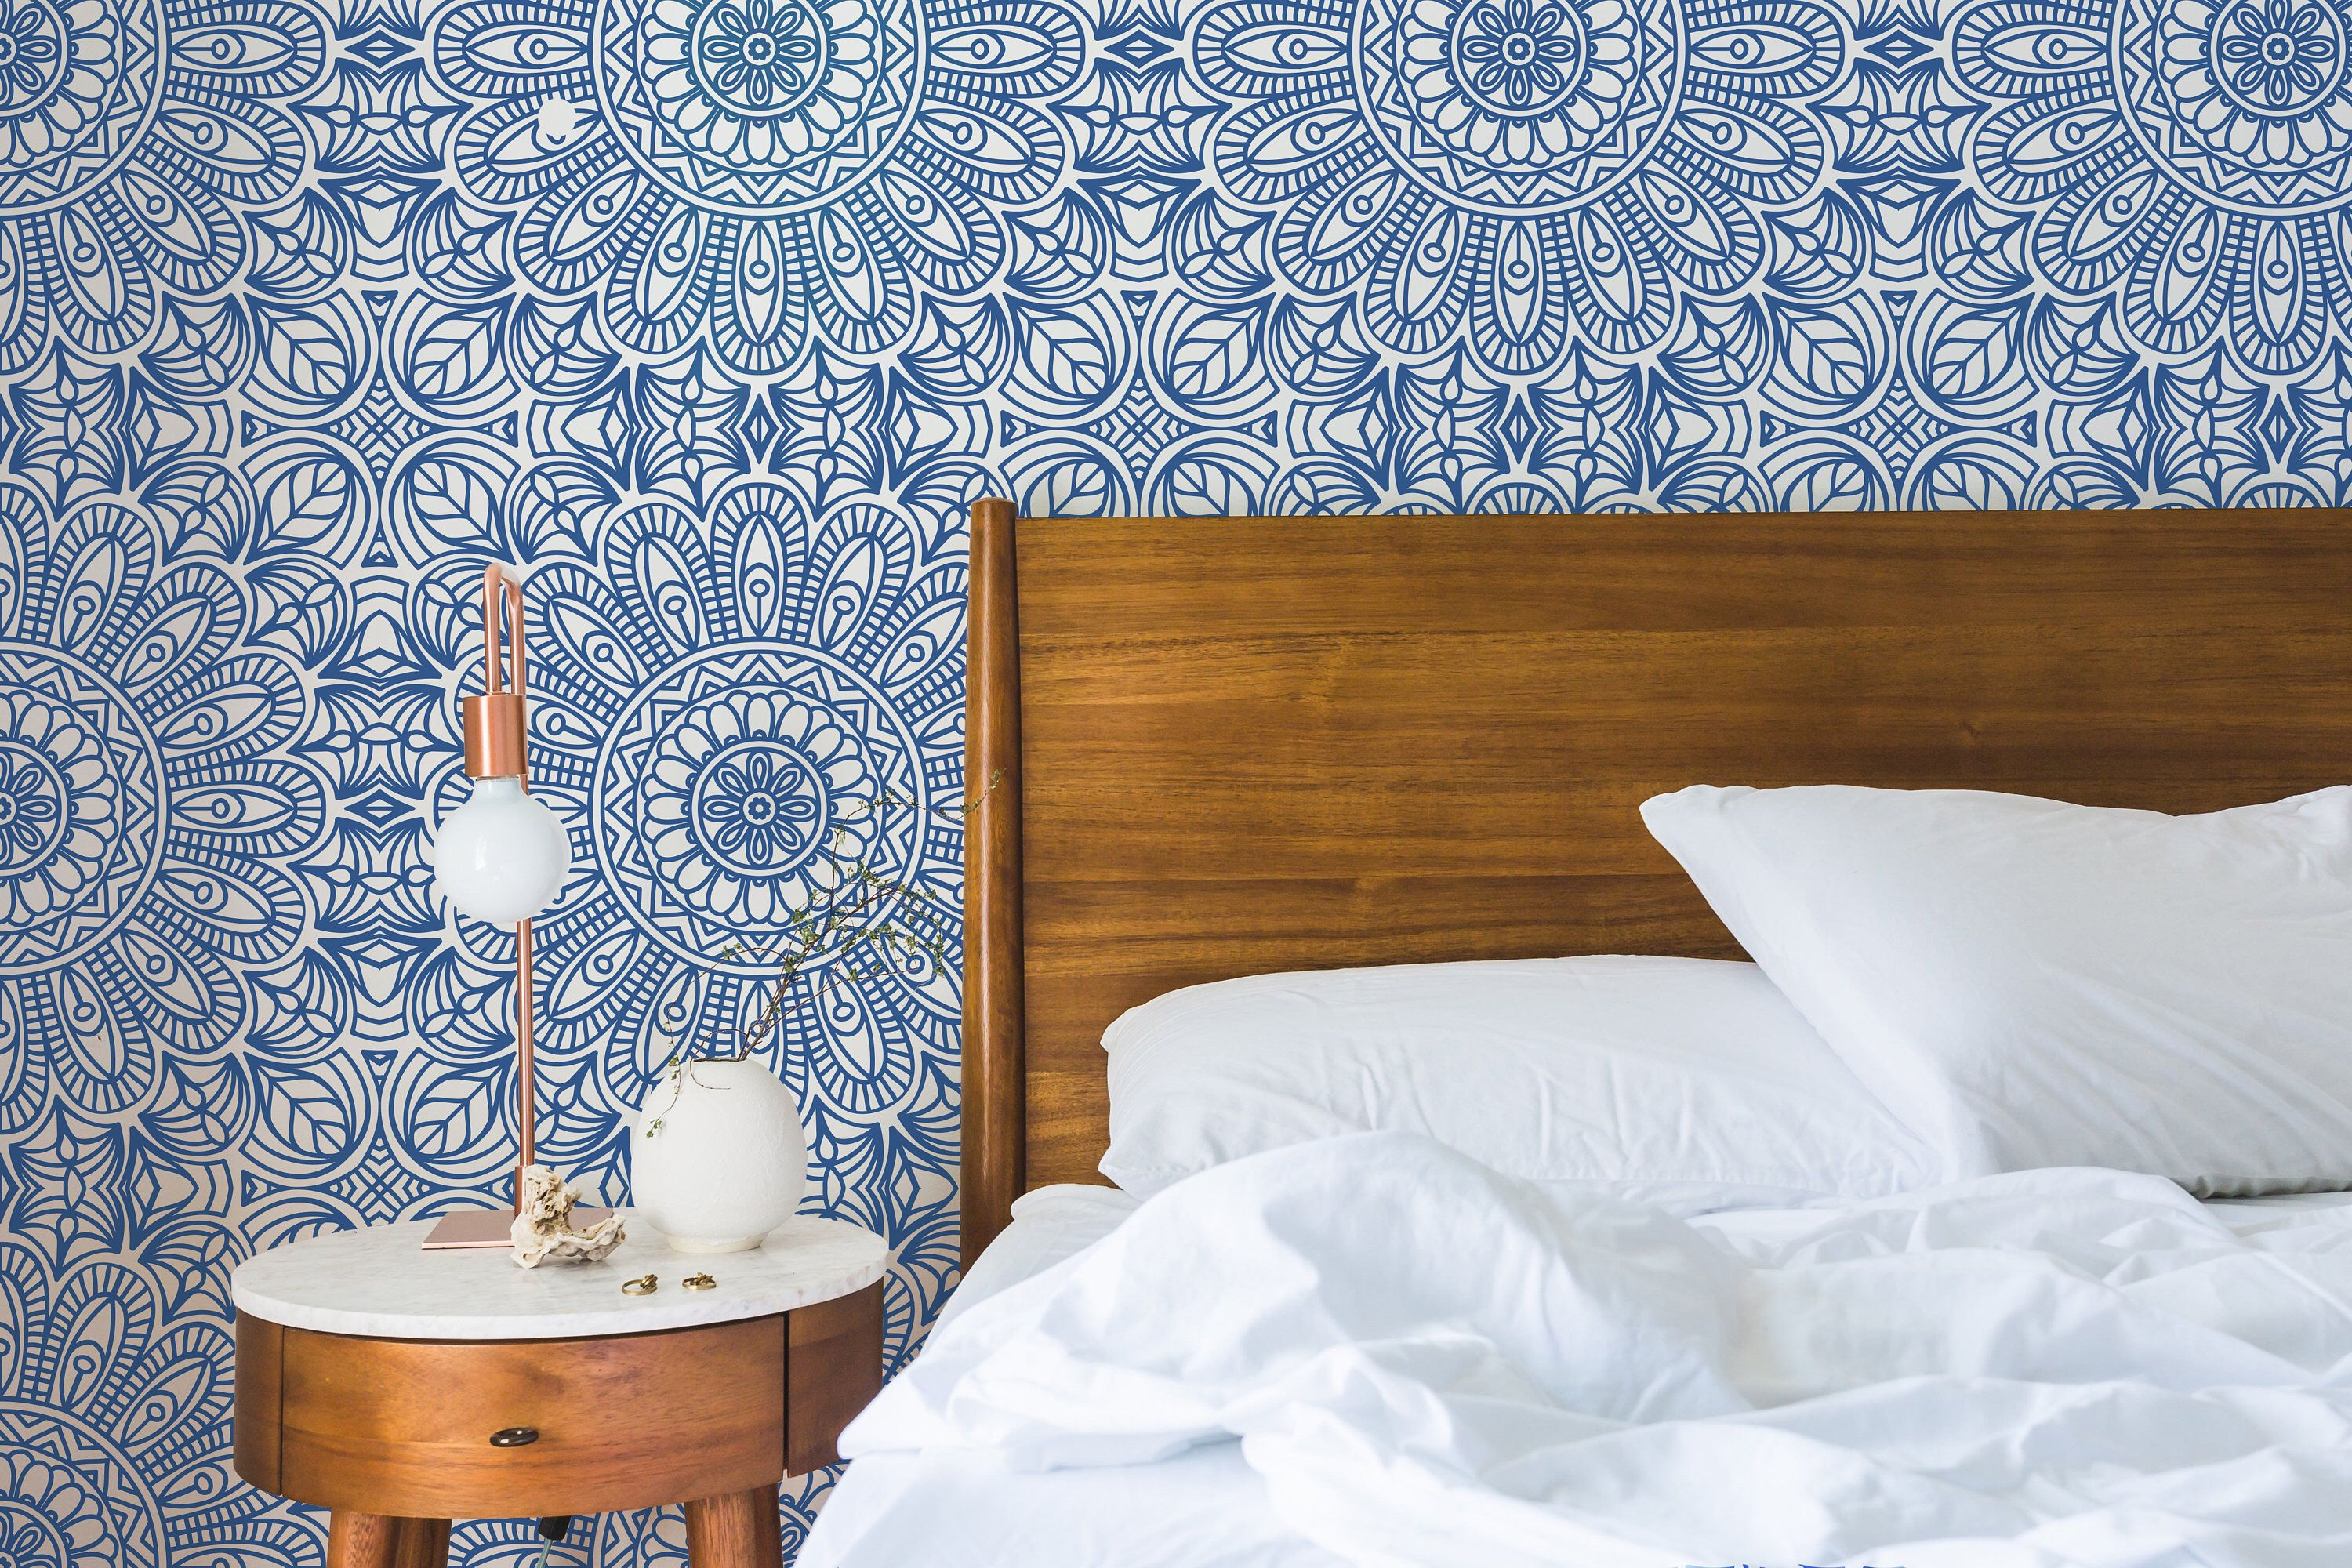 Moroccan Style Removable Wallpaper Blue Moroccan Tile Peel And Stick Wallpaper Self Adhesive Moroccan Wallpaper Vinyl Or Textile Moroccan Wallpaper Removable Wallpaper Blue Moroccan Tile